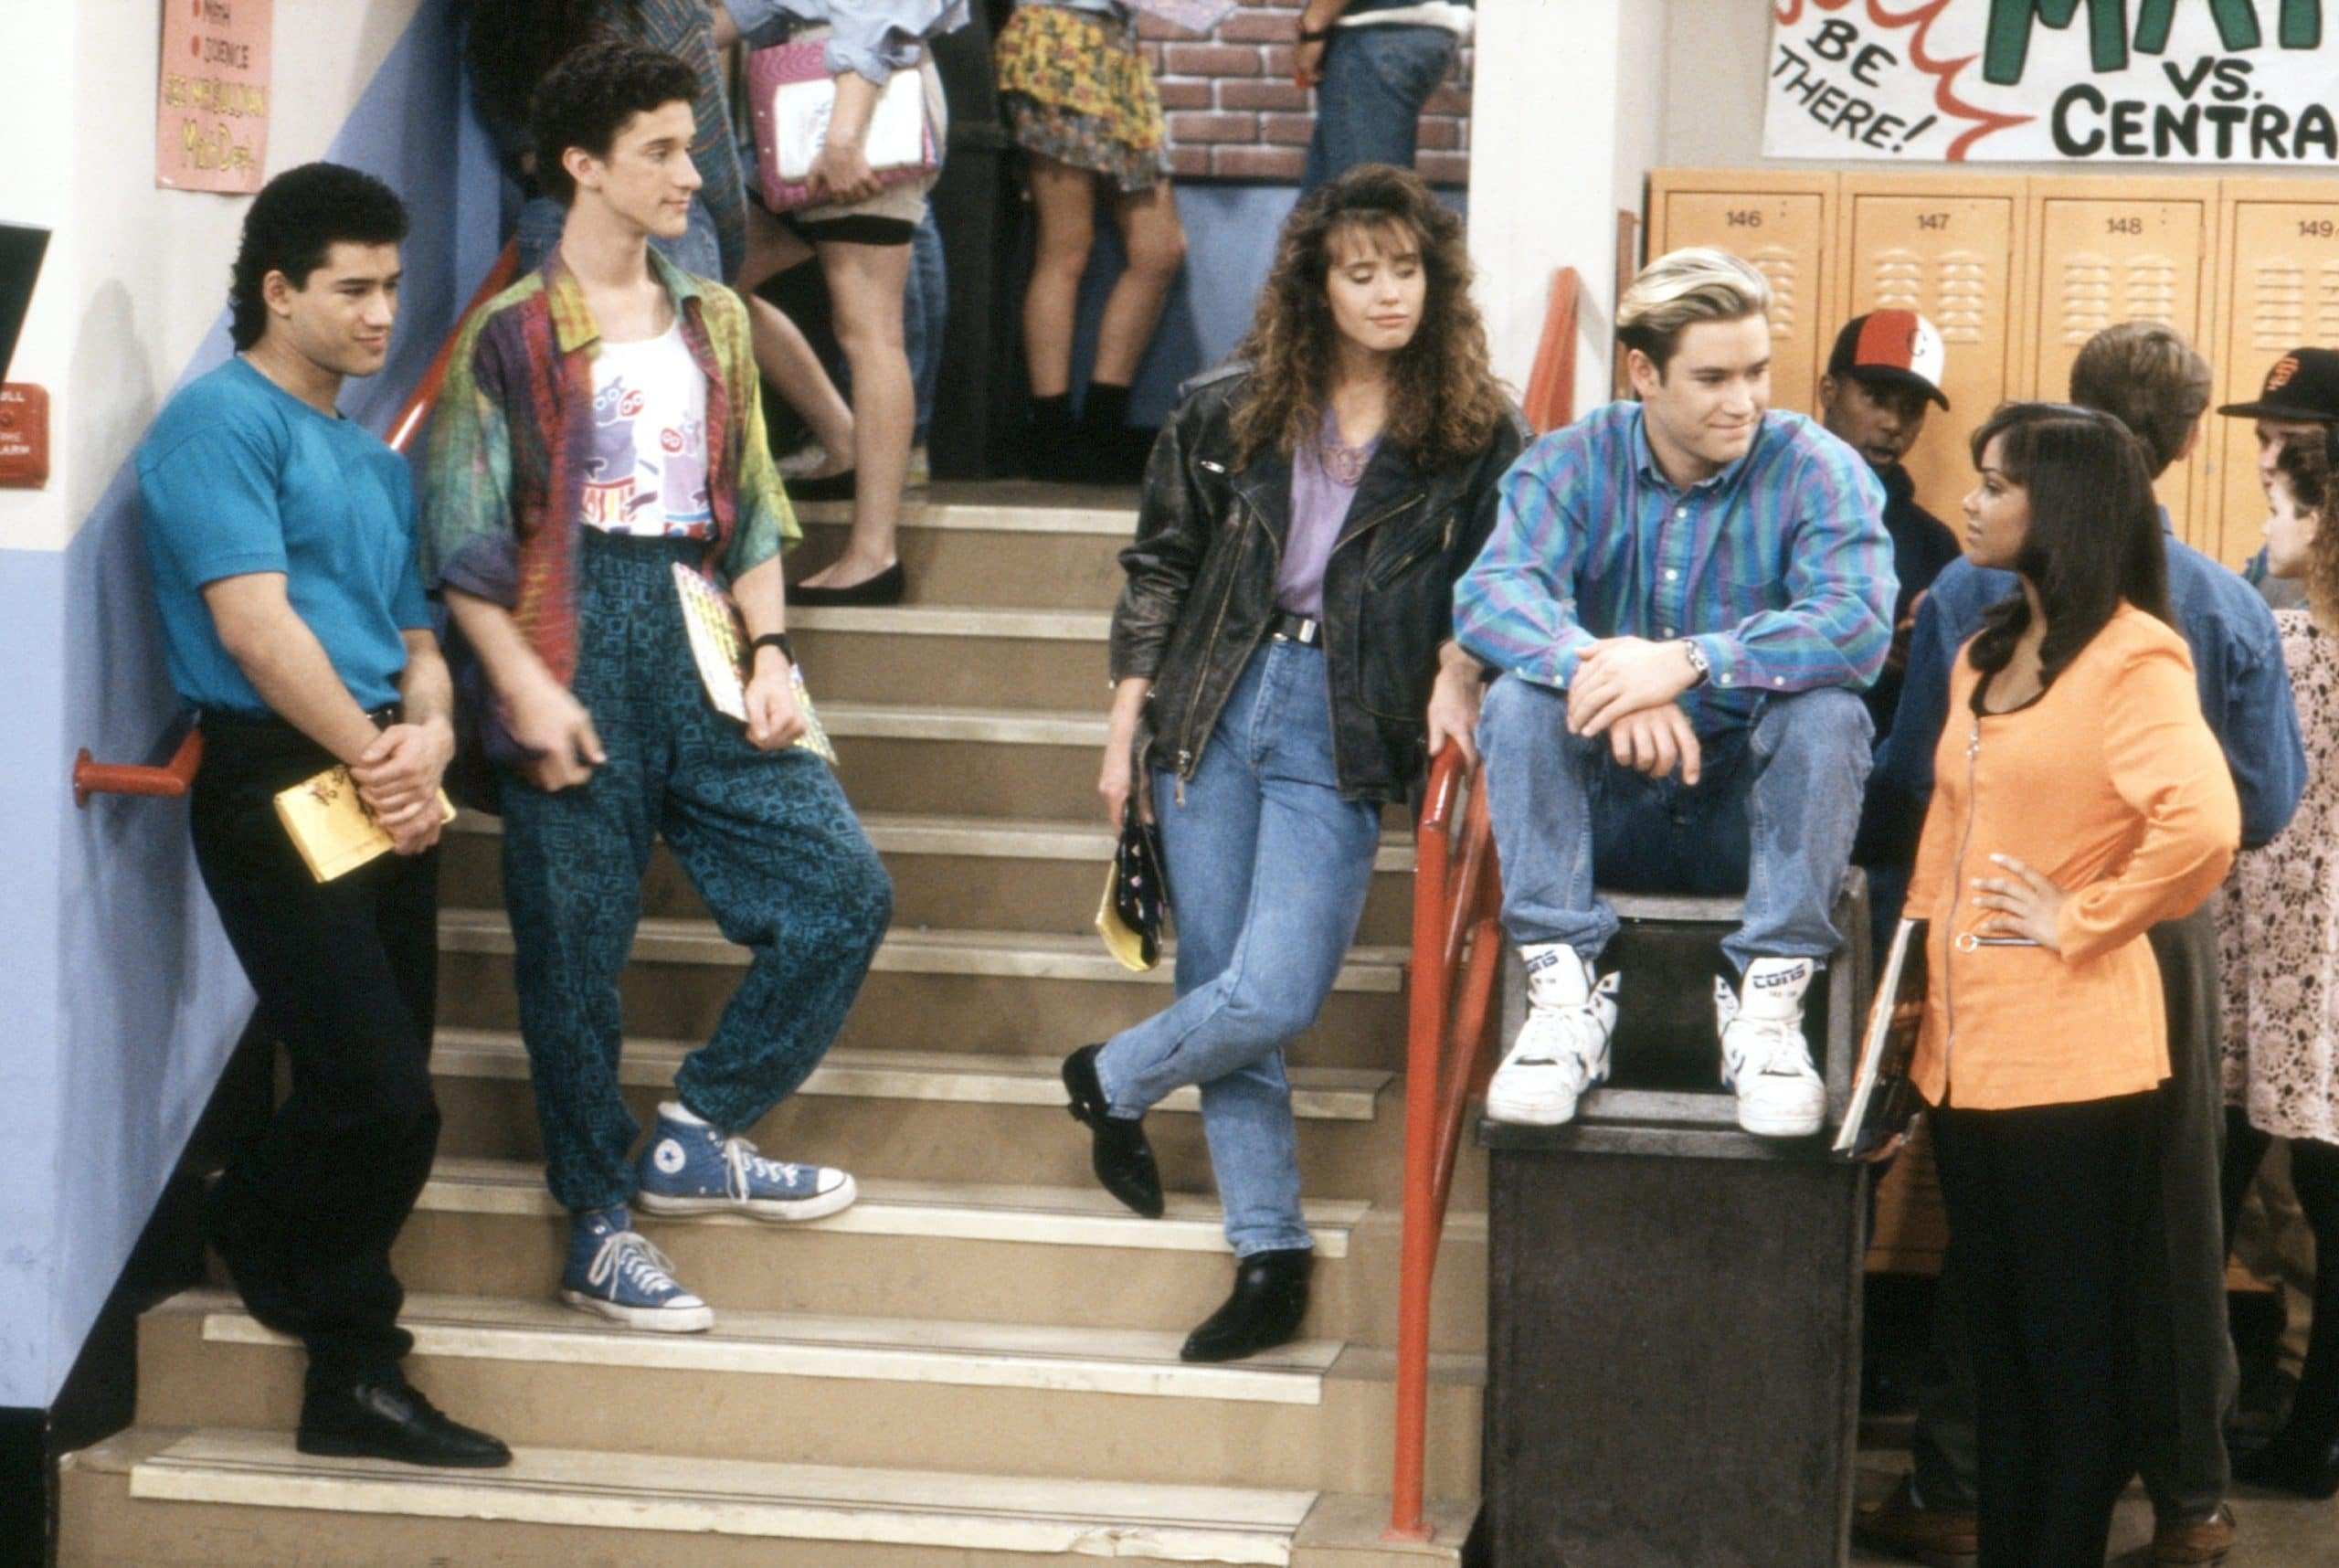 saved by the bell cast members